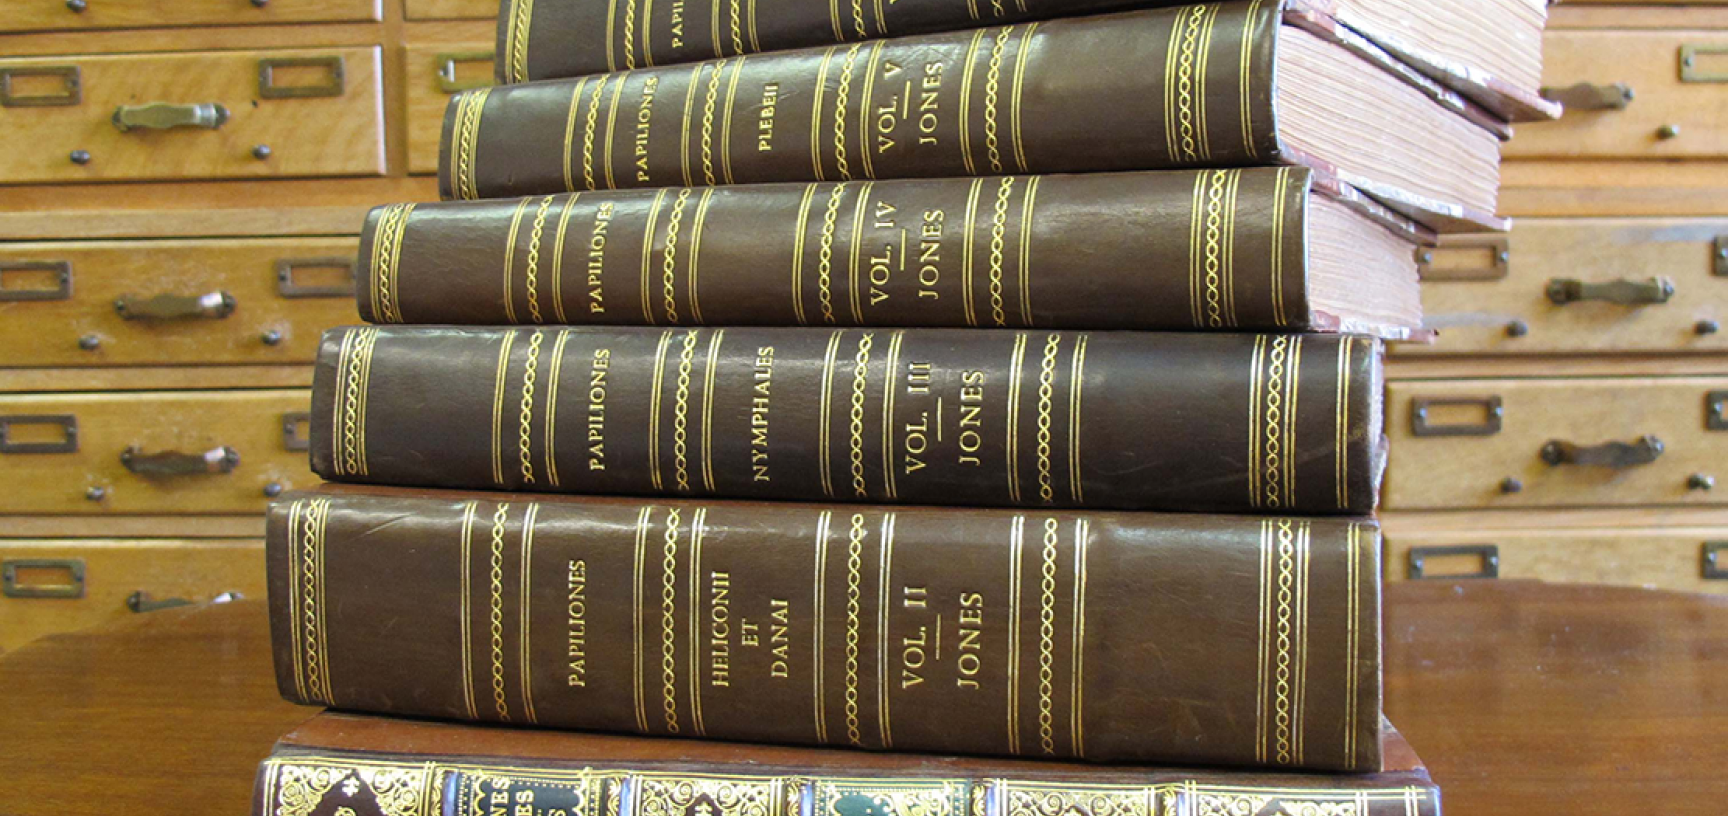 Jones volumes